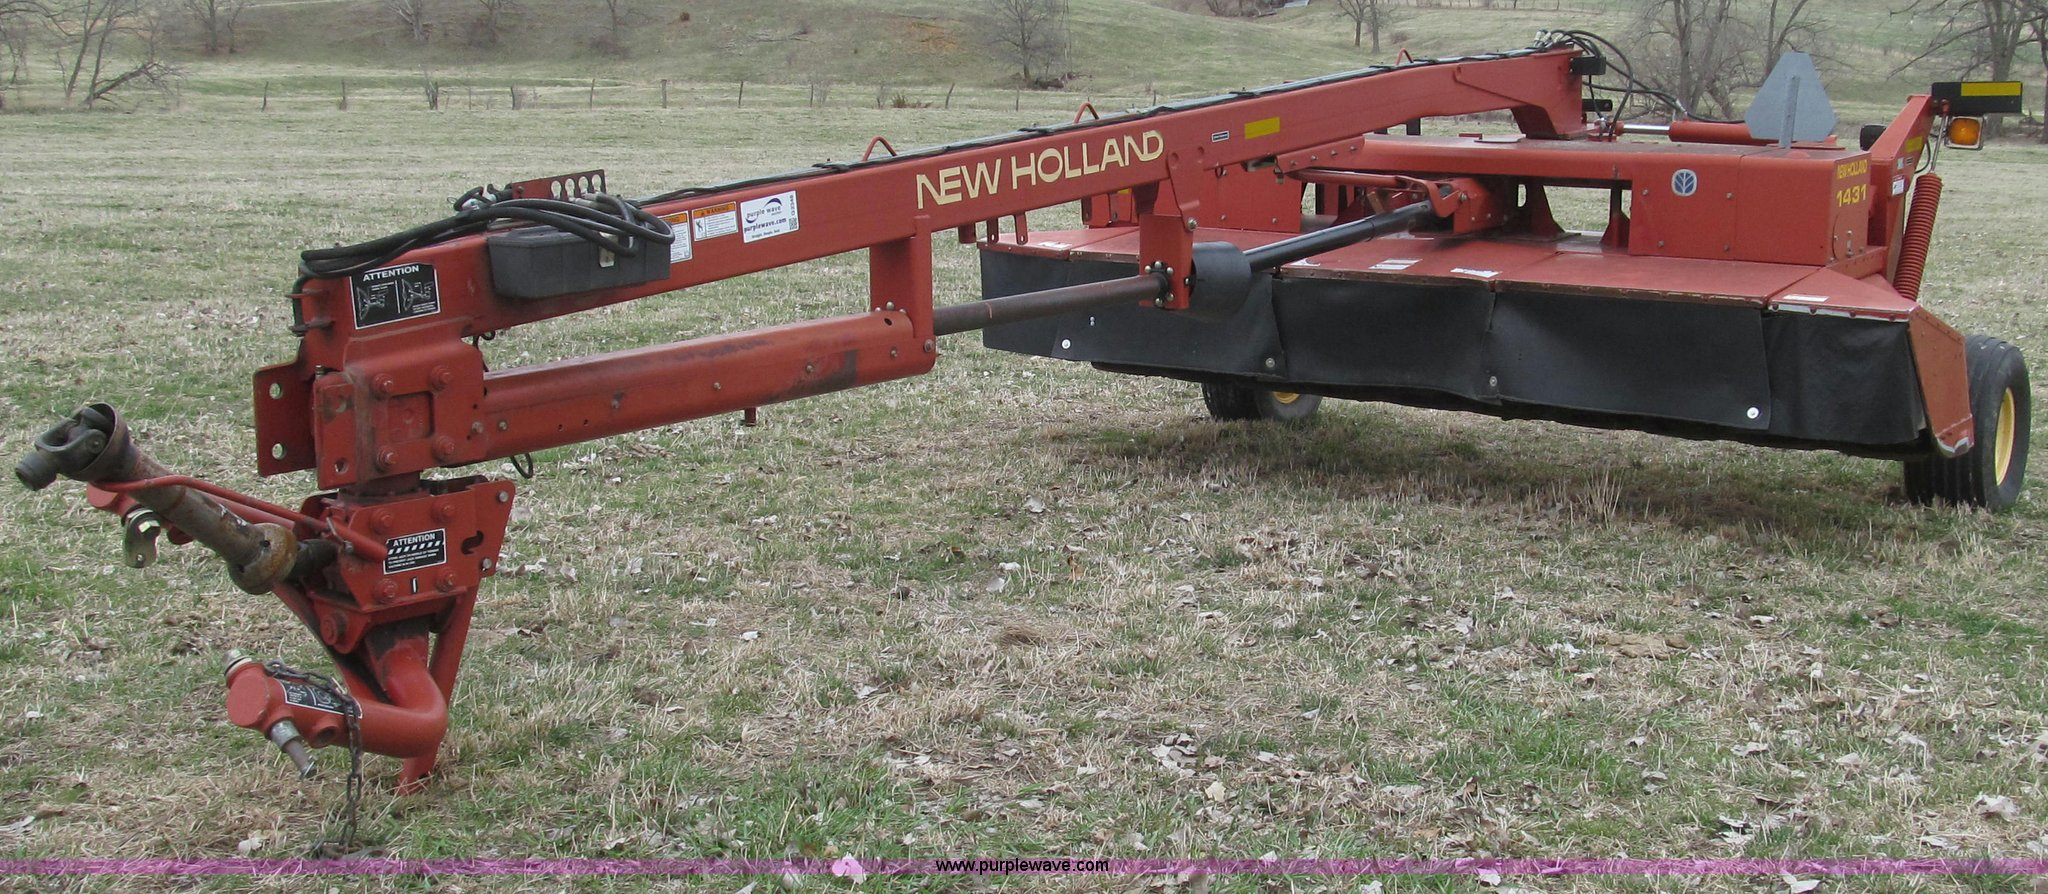 ... Holland 1431/25WT discbine mower conditioner Full size in new window ...